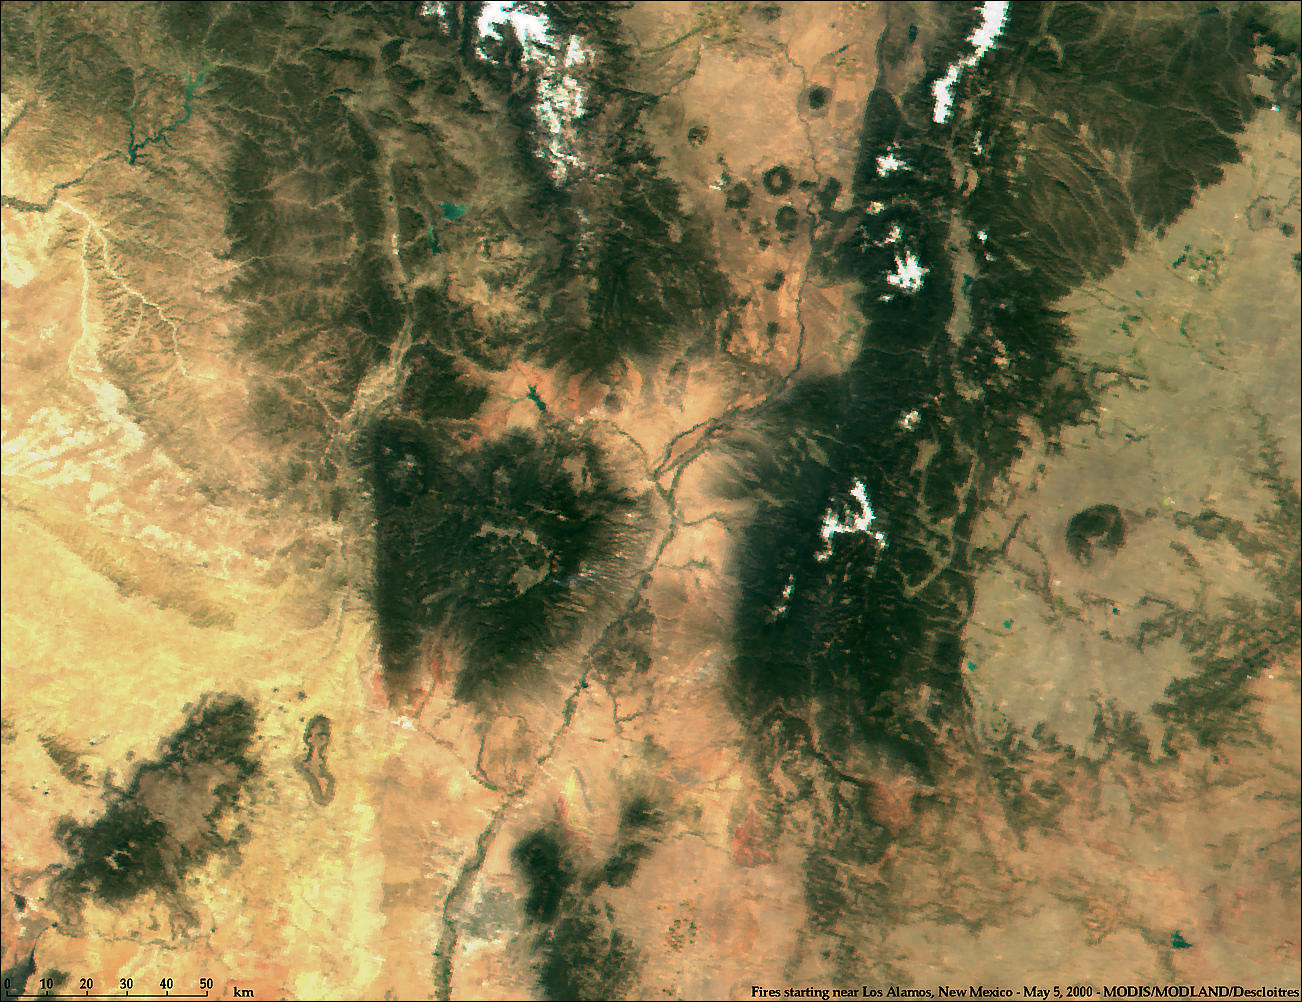 Fires near Los Alamos, New Mexico